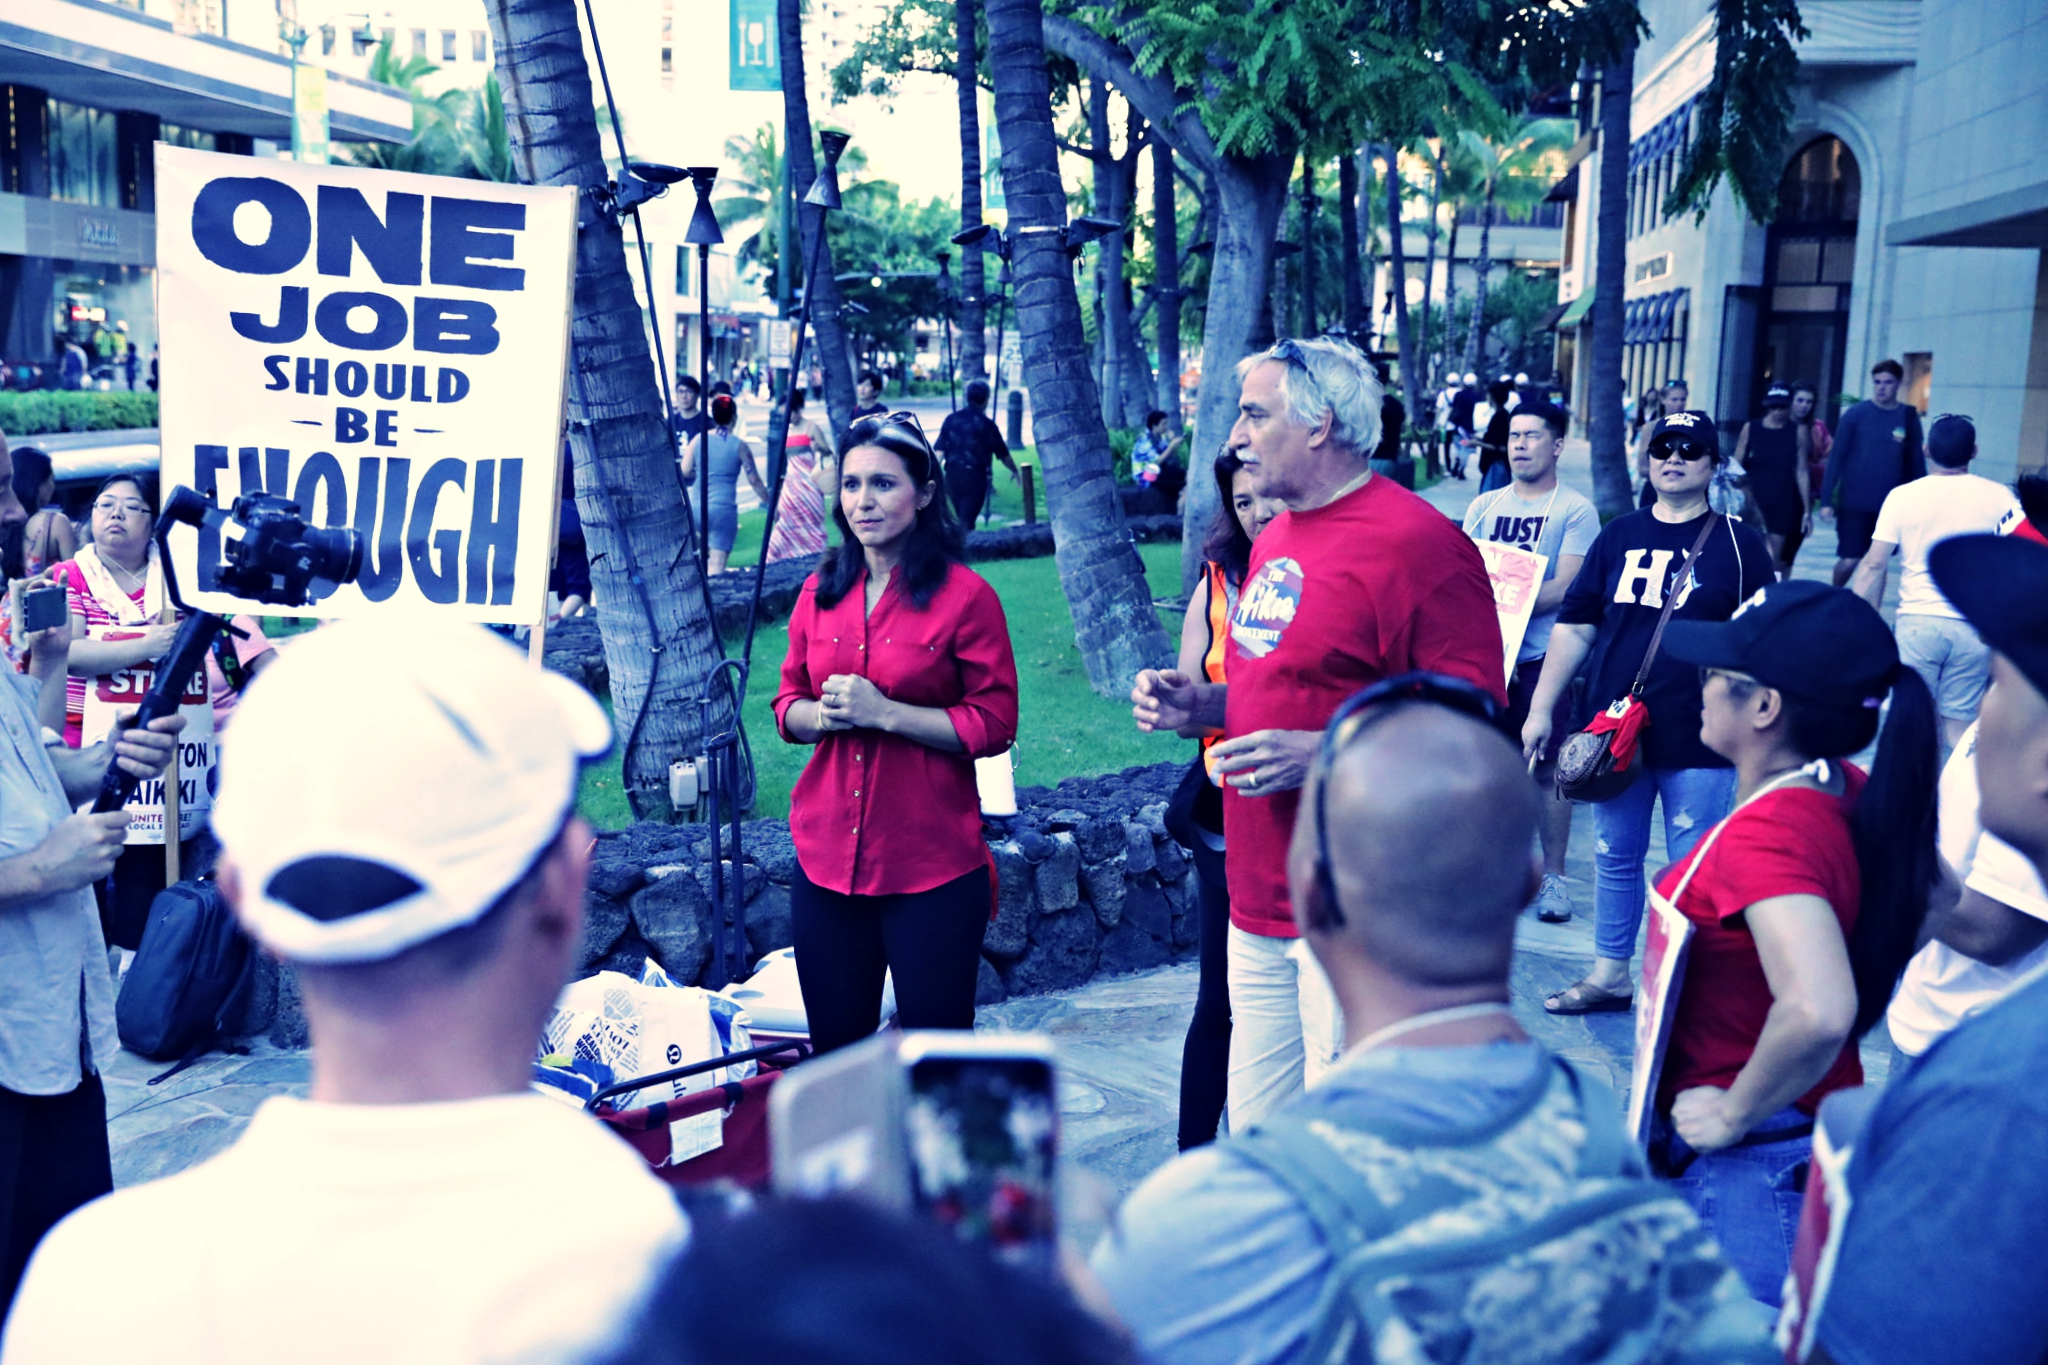 Rep. Gabbard Supports Hotel Workers Fighting for 'Living Wage'